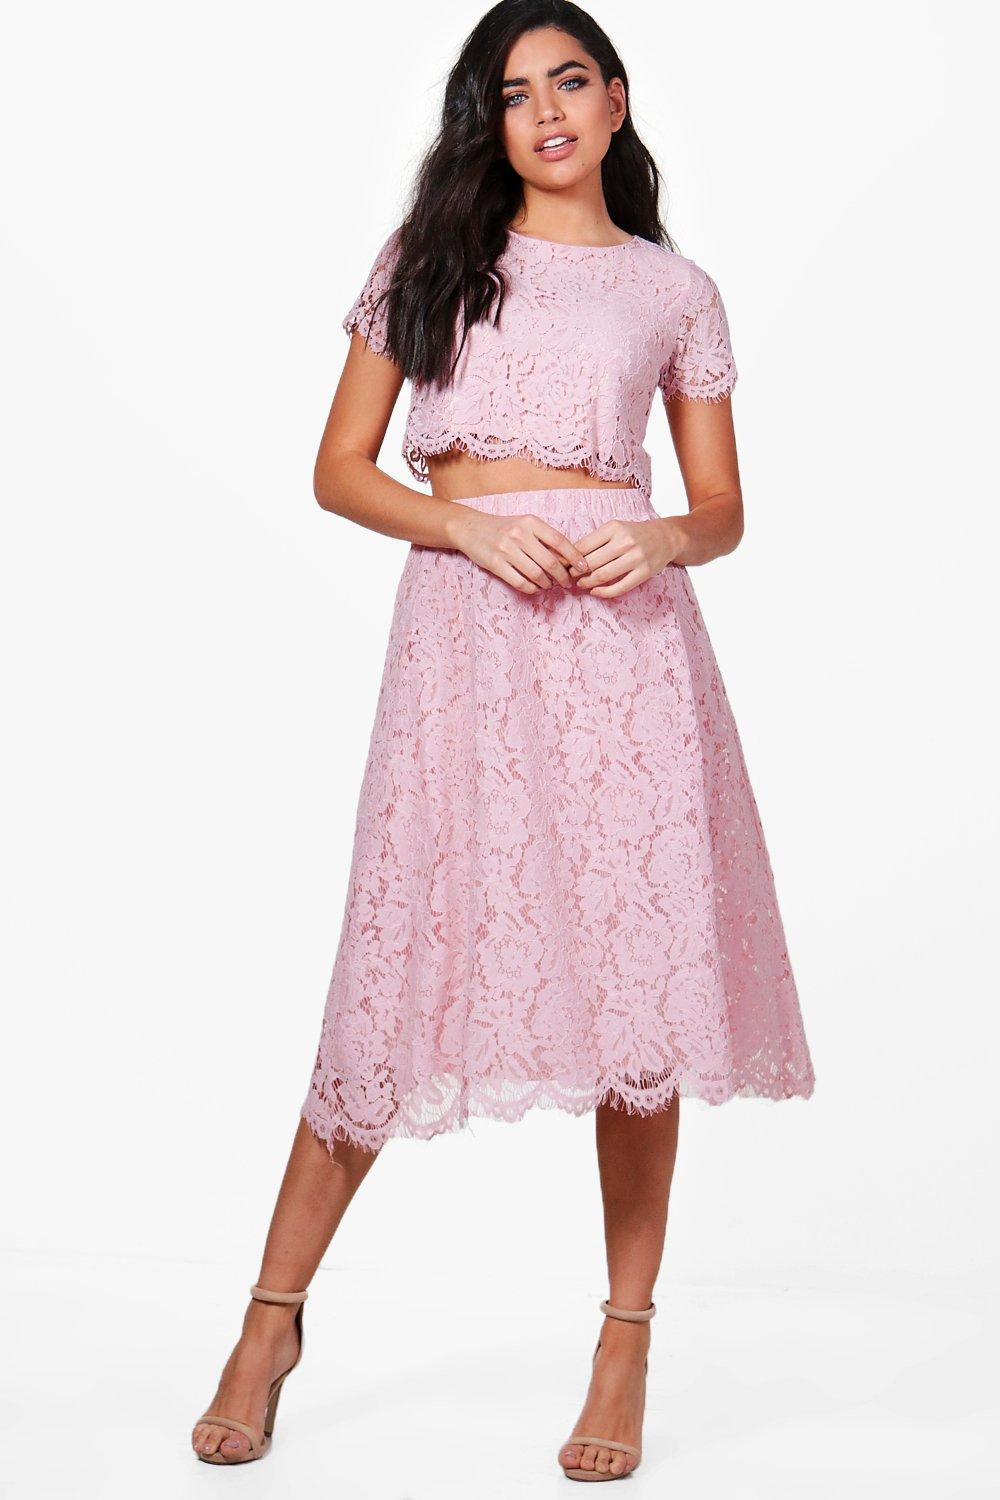 Boutique Aria Lace Full Midi Skirt Co-Ord Set